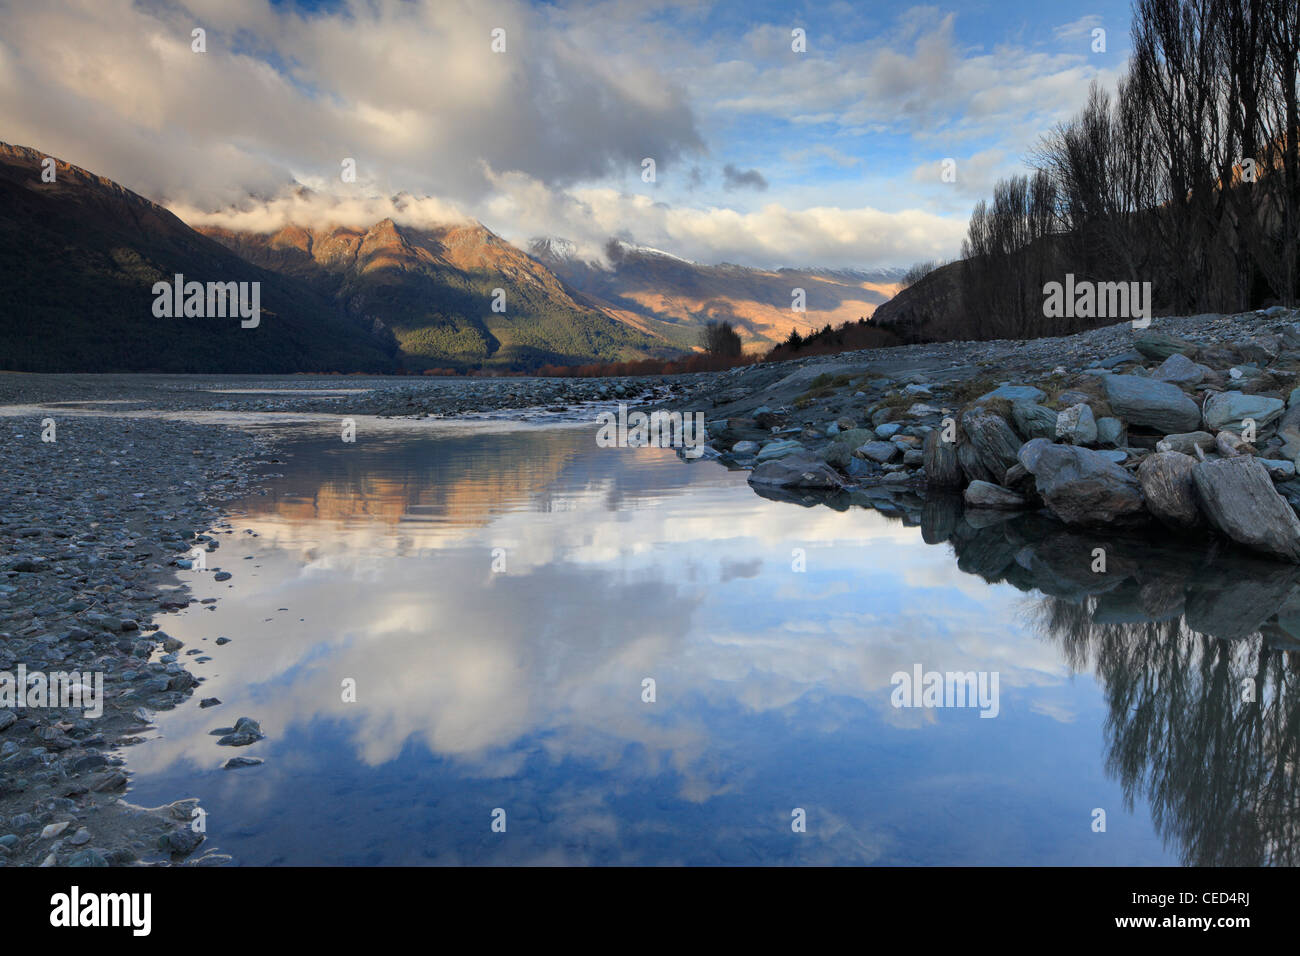 Snow-covered mountains reflected in an eddy of the Matukituki River in Mt Aspiring National Park - Stock Image